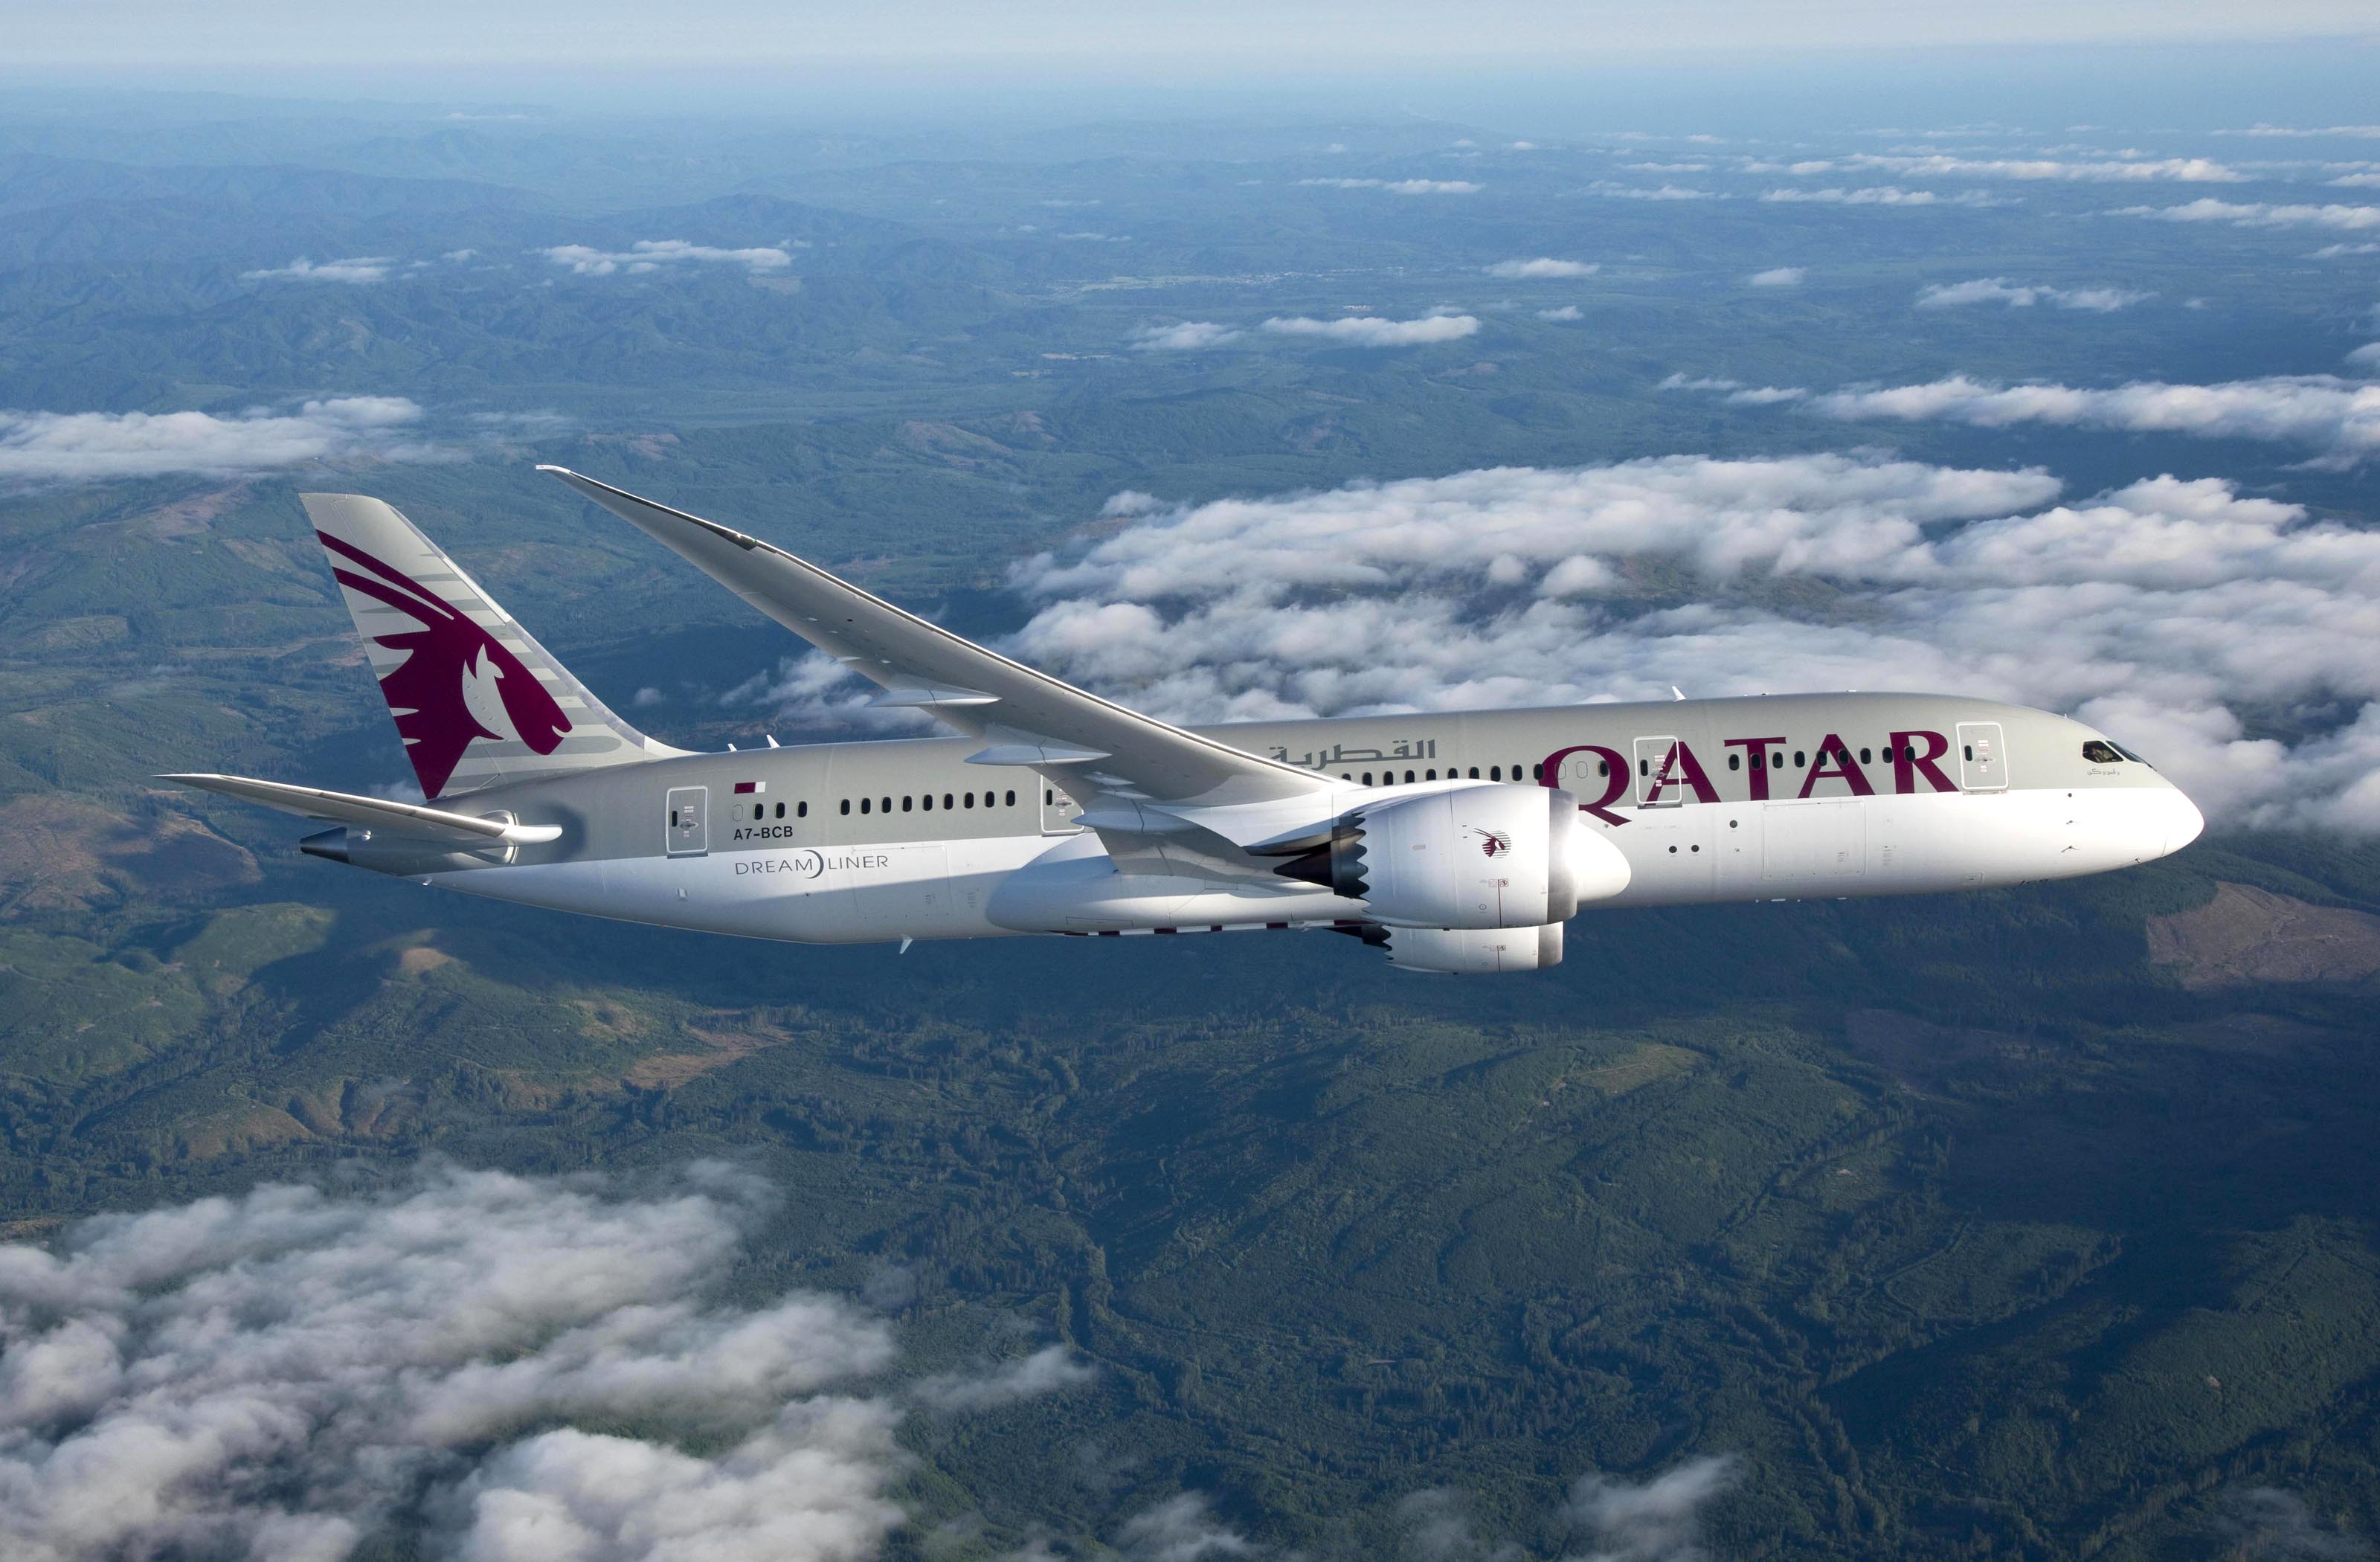 El boeing 787 de qatar airways despegar de madrid en agosto for Oficina qatar airways madrid